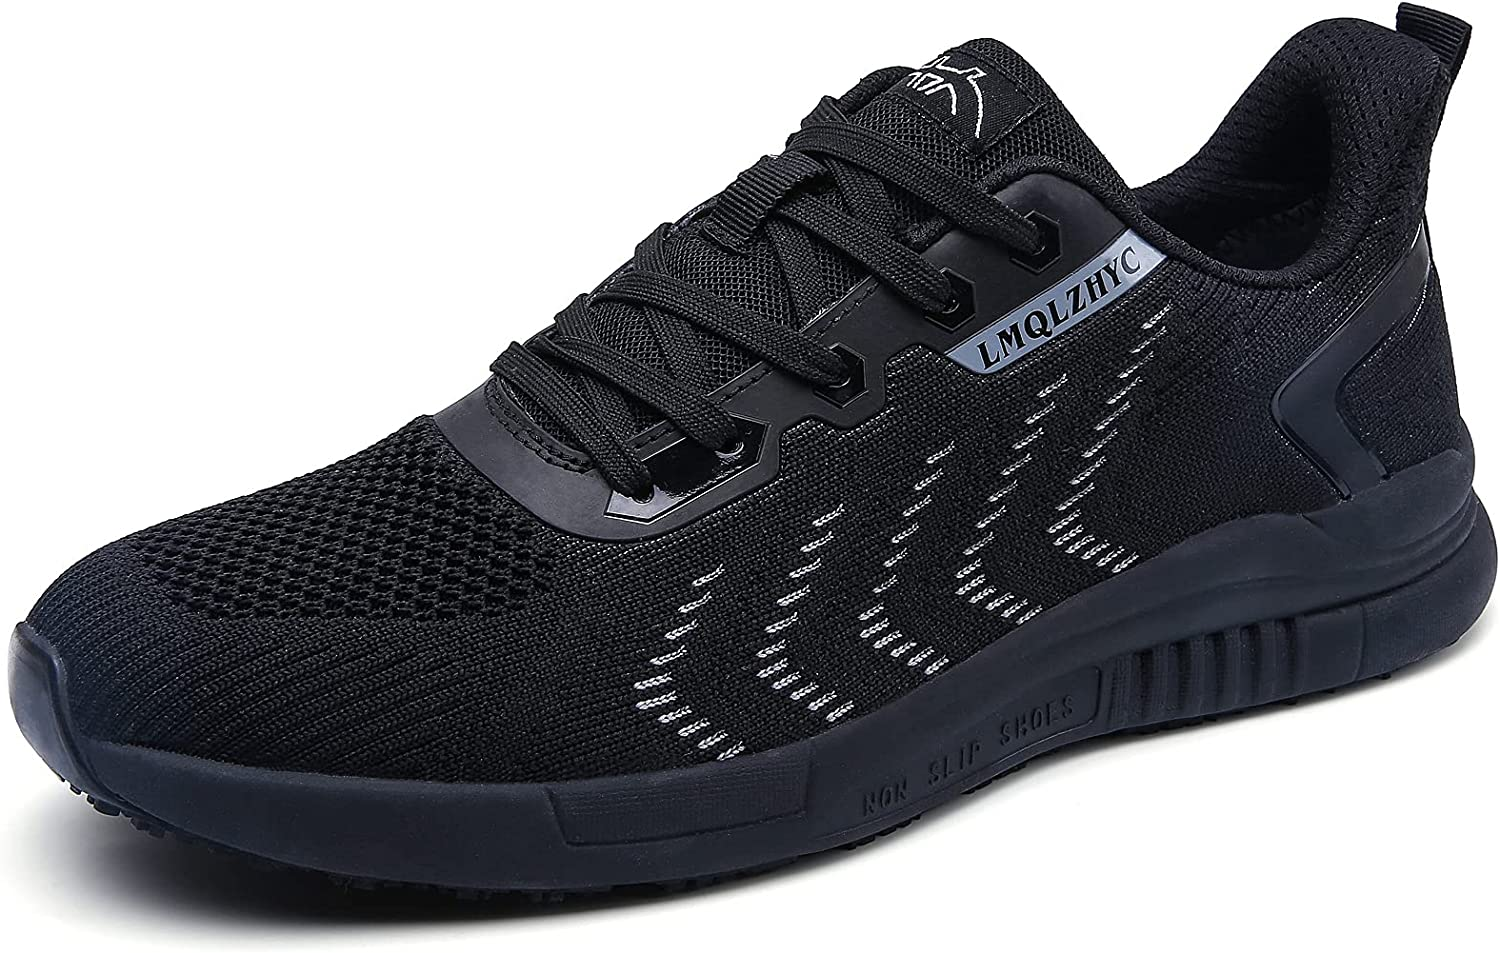 LMQLZHYC Men's and Women's Food Service Work Shoes Non Slip Waterproof Breathable Mesh Upper, Suitable for Chefs, Nurses, Health Care Workers, Lightweight and Comfortable Work Shoes